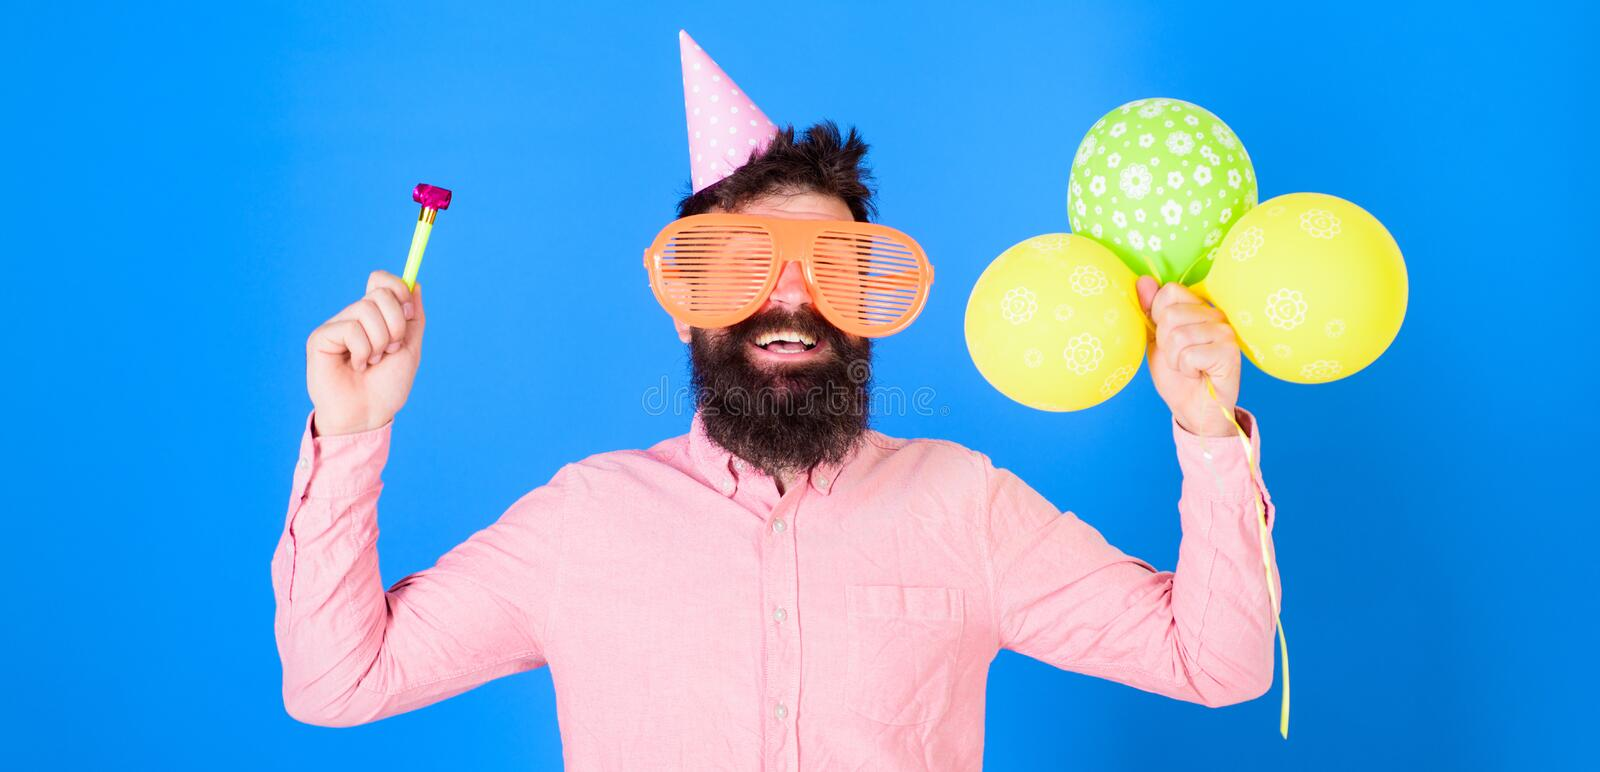 Waist up shot of good looking positive man with beard holding helium balloons and whistle smiling broadly, having fun on. Party. People, joy, entertainment and stock photo